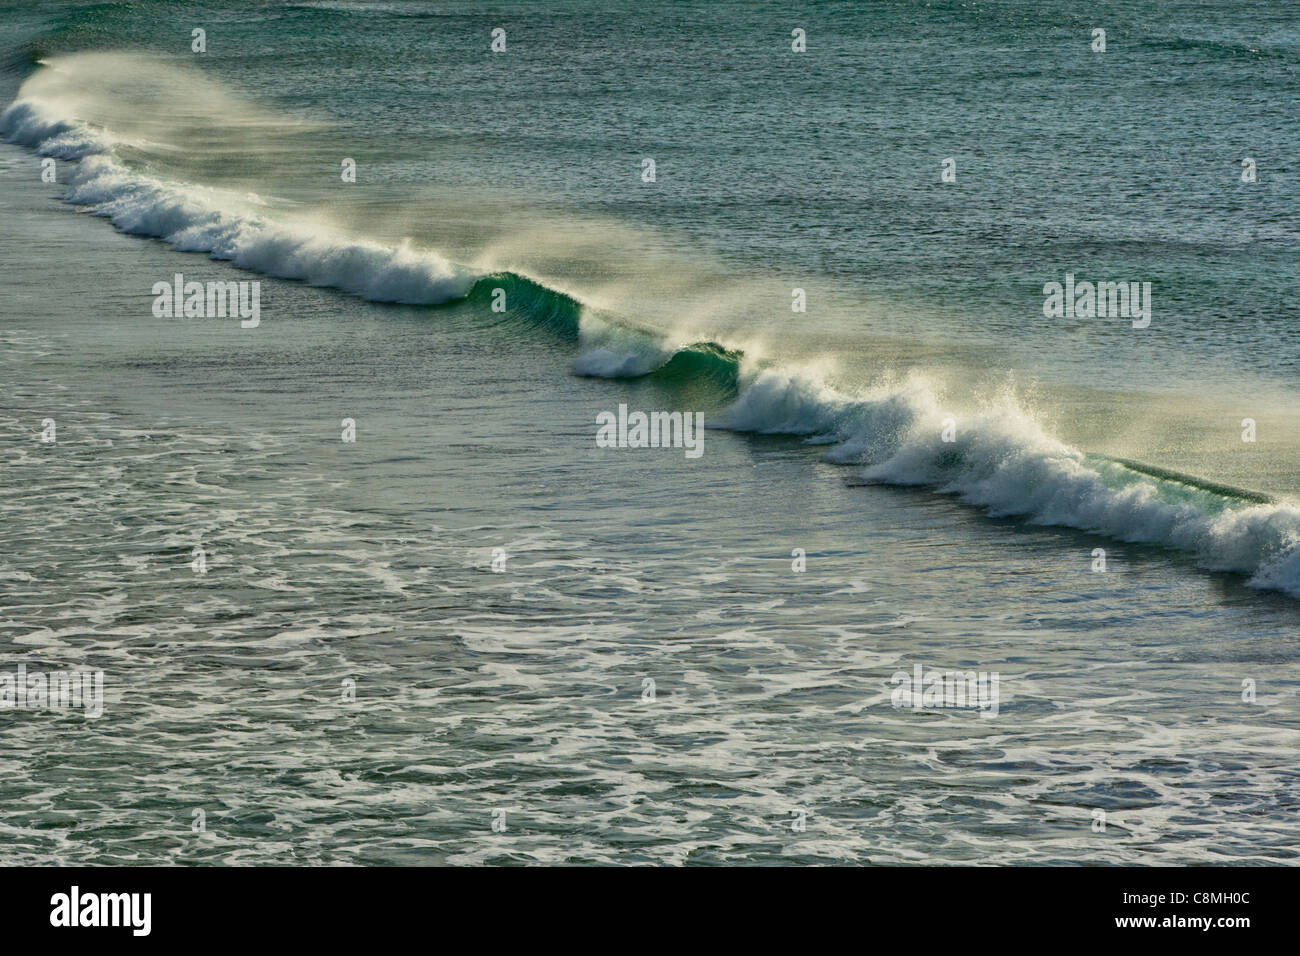 Breaking wave in strong winds at Quendale Bay, Mainland, Shetland, Scotland - Stock Image